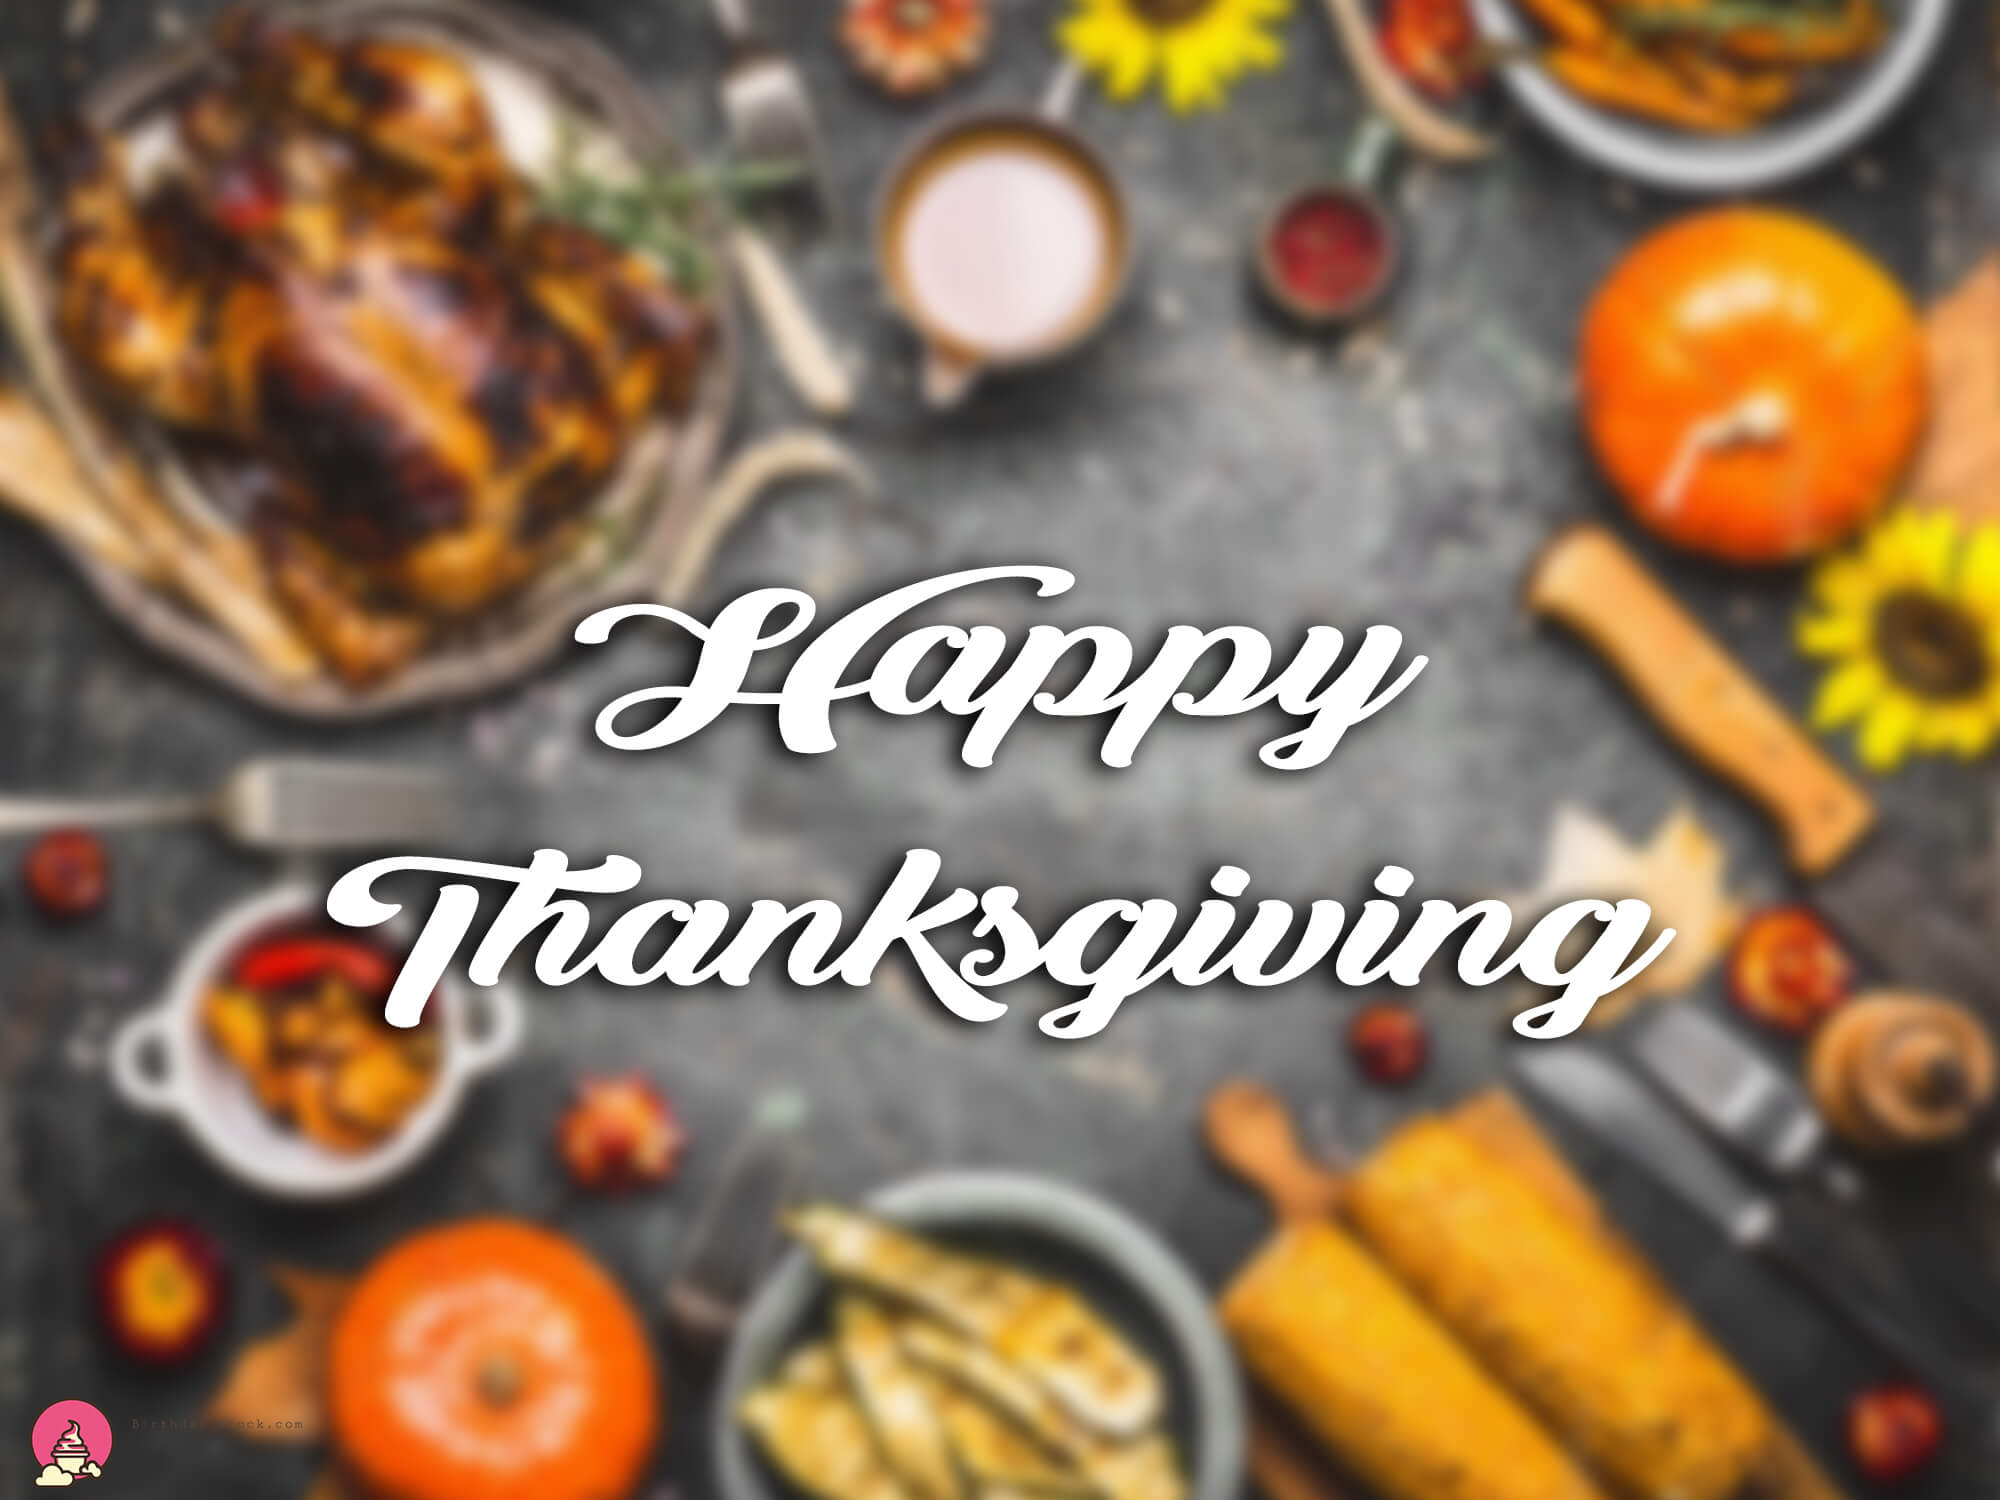 Latest Happy Thanksgiving Images, Wishes, Pictures & Messages 2019